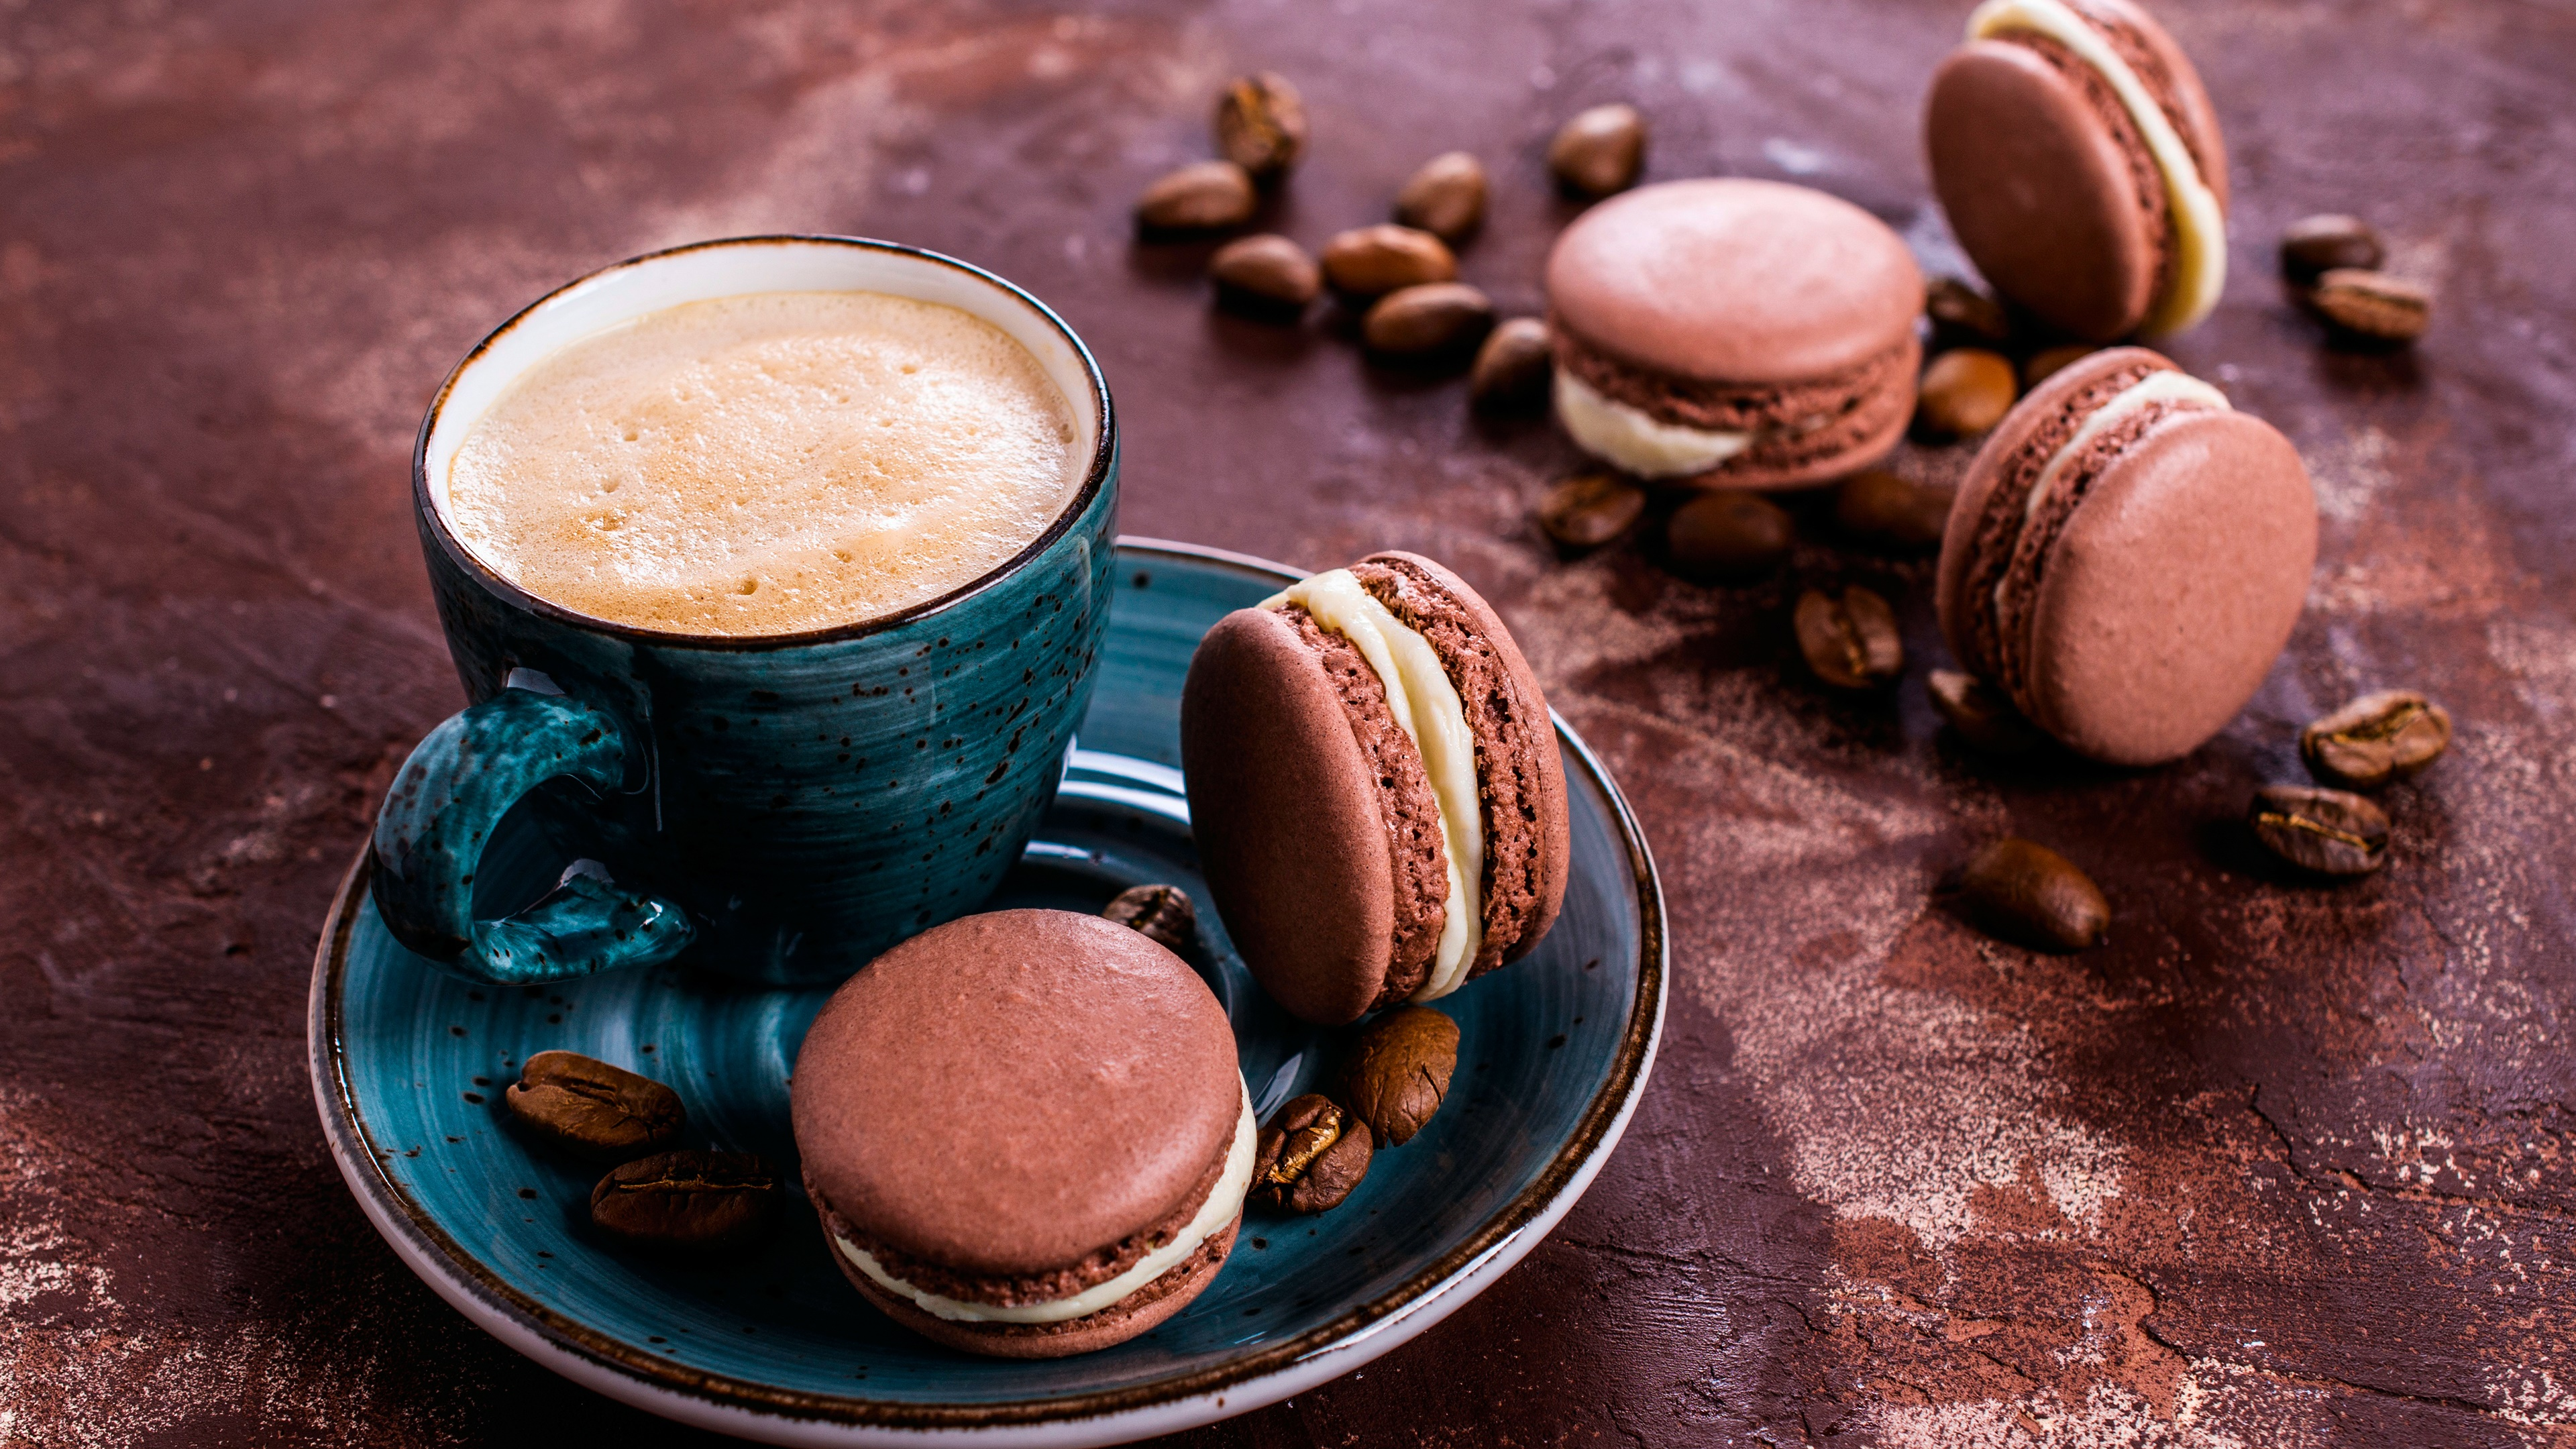 Coffee with macaron wallpaper